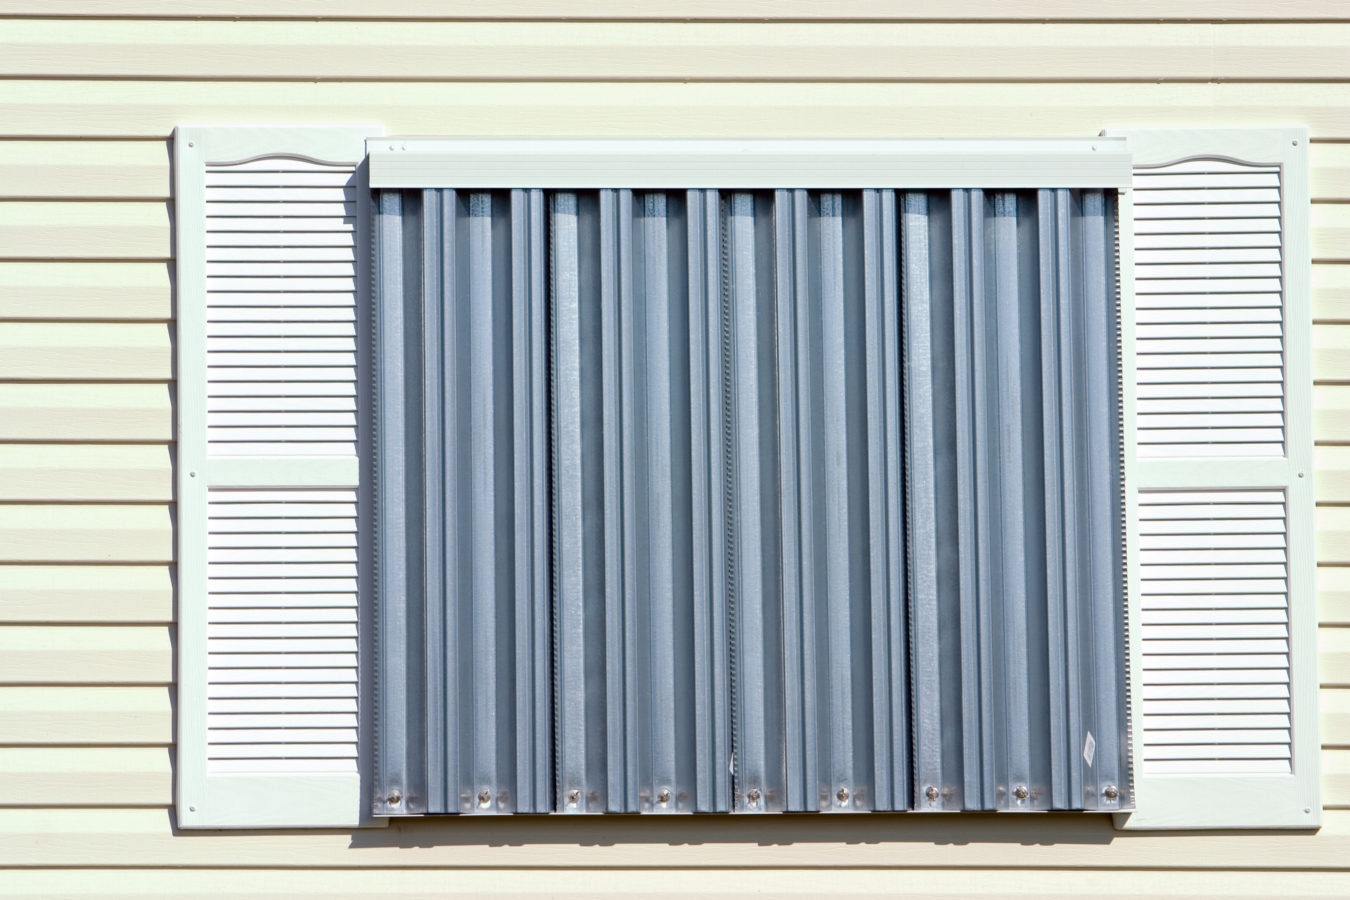 Gov't denies local manufacturing company from making, installing hurricane shutters during curfew